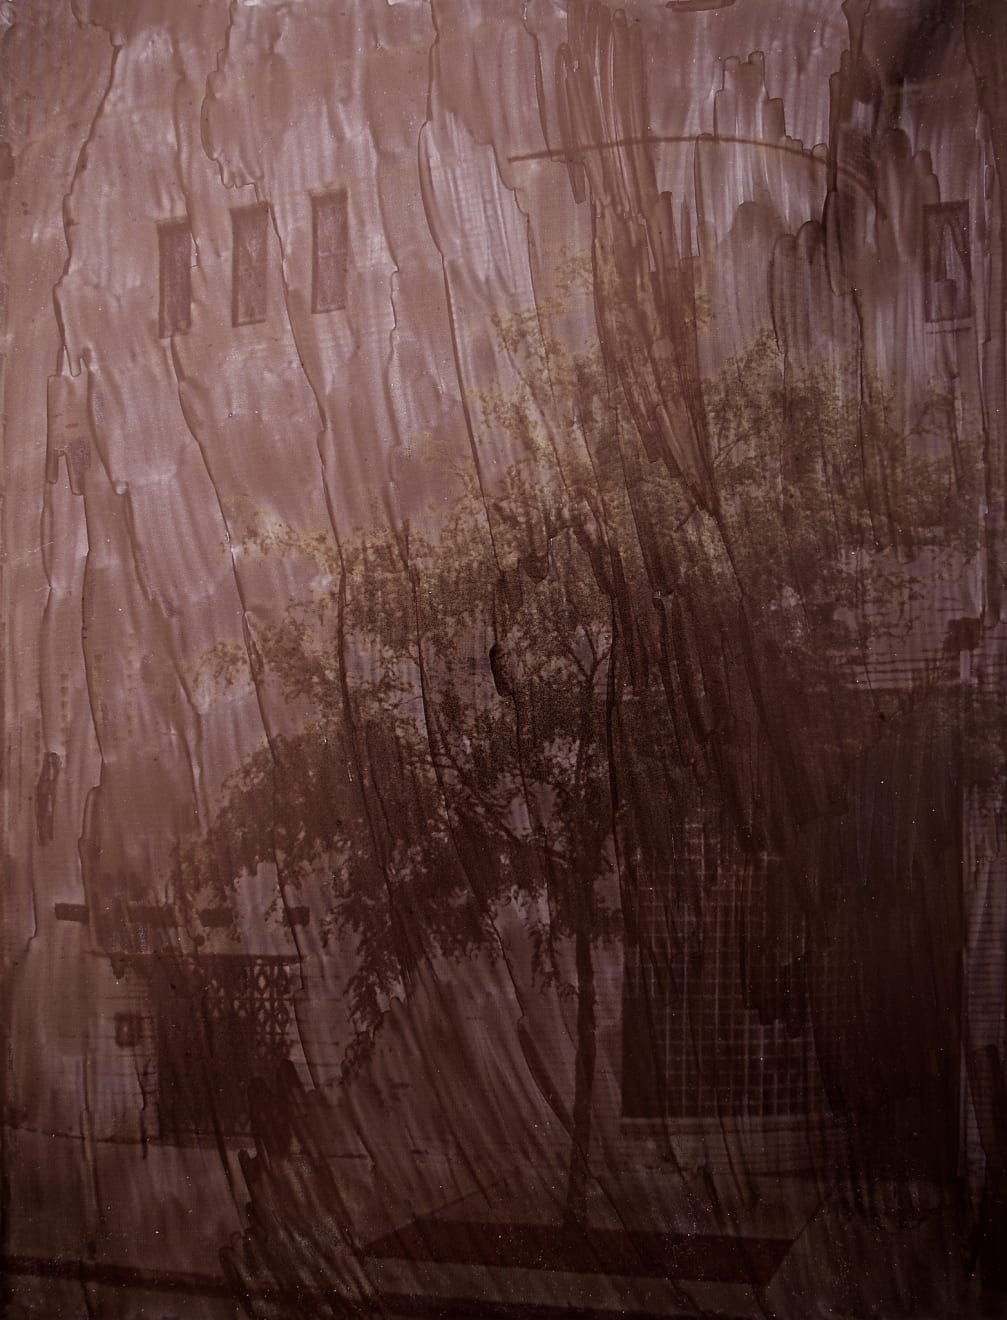 Cath Campbell, Untitled (Tree), 2014